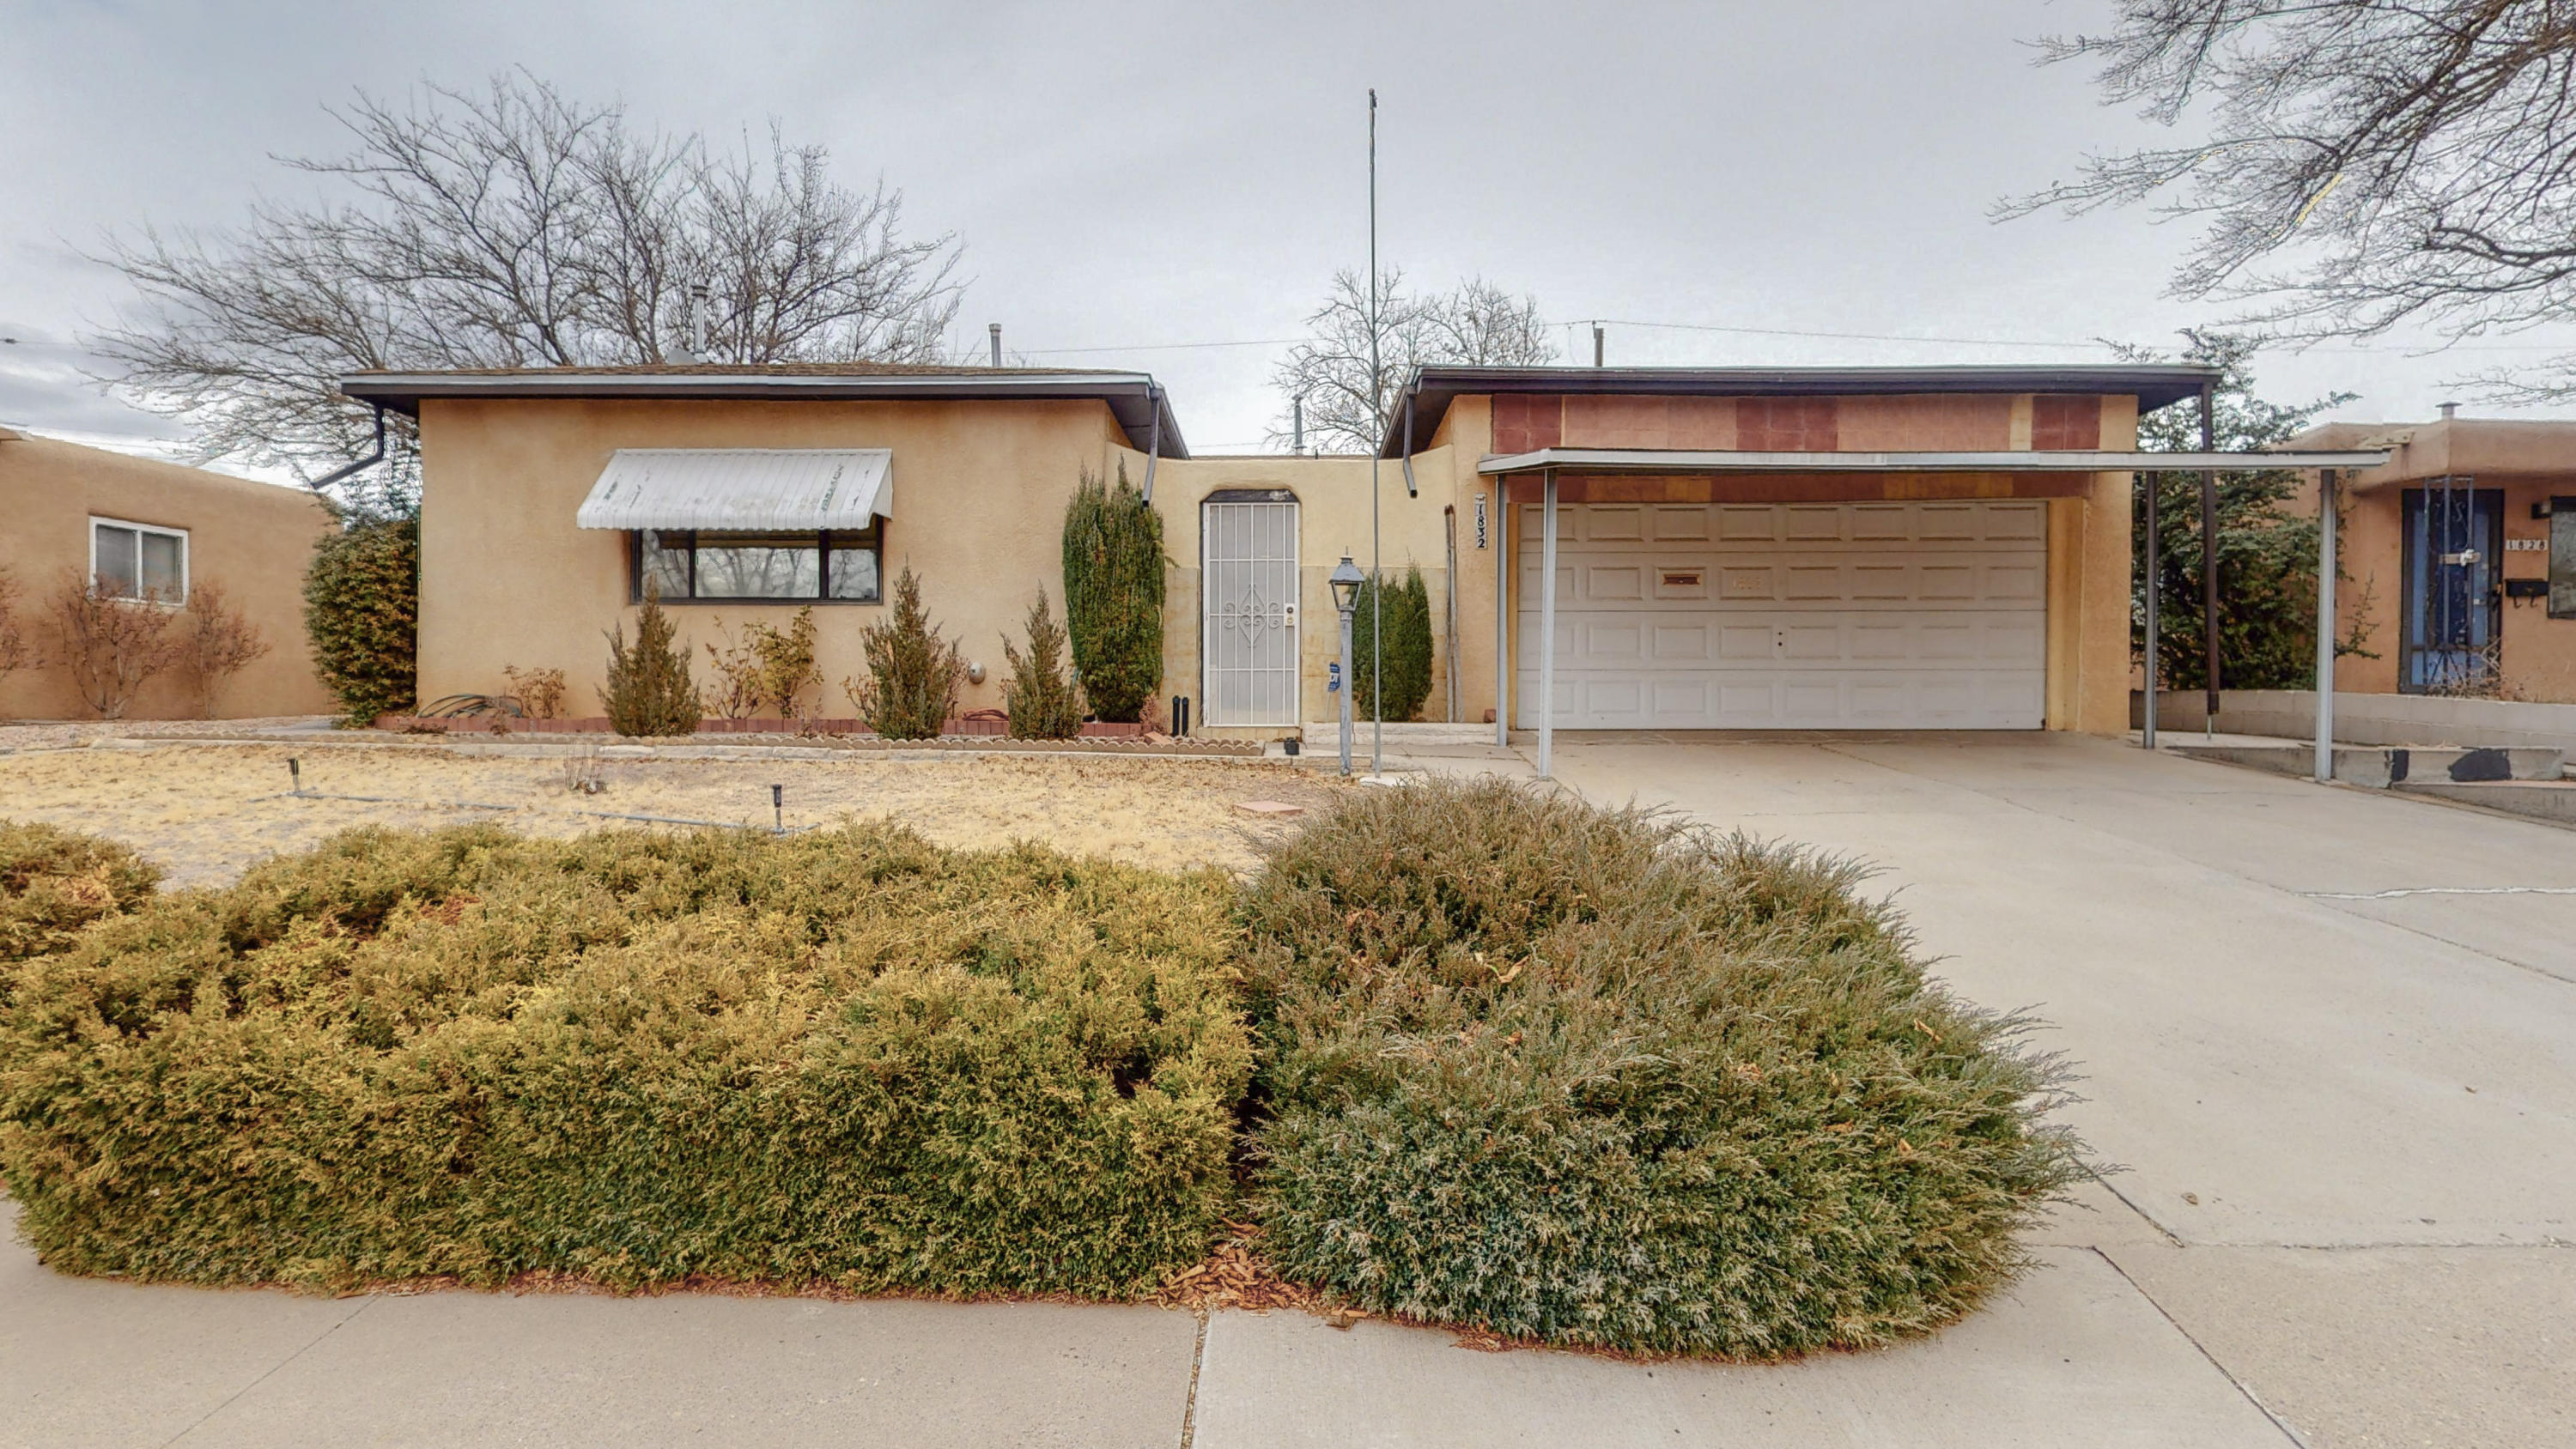 Great NE location in Snowheights neighborhood, close to Uptown, stores, freeway, restaurants, etc.  This is a 2nd owner home since 1960/61.  Perfect home for someone looking to put some ''sweat-equity'' into it to modernize it and make it your own! Private, security-door gated front entry courtyard has one open wall to garage area. Tongue & groove ceiling above front entry. Great floorplan and square footage (1865 sq.ft.) for the neighborhood!  Two living areas plus a SUNROOM, not included in square footage.  Front family room facing street has pellet stove, and a large living room opens to sunroom, with French doors to backyard. Large laundry area. Private backyard features shed with shelving for storage.  Roof is less than 5 years! Come take a look and this just might be your home!